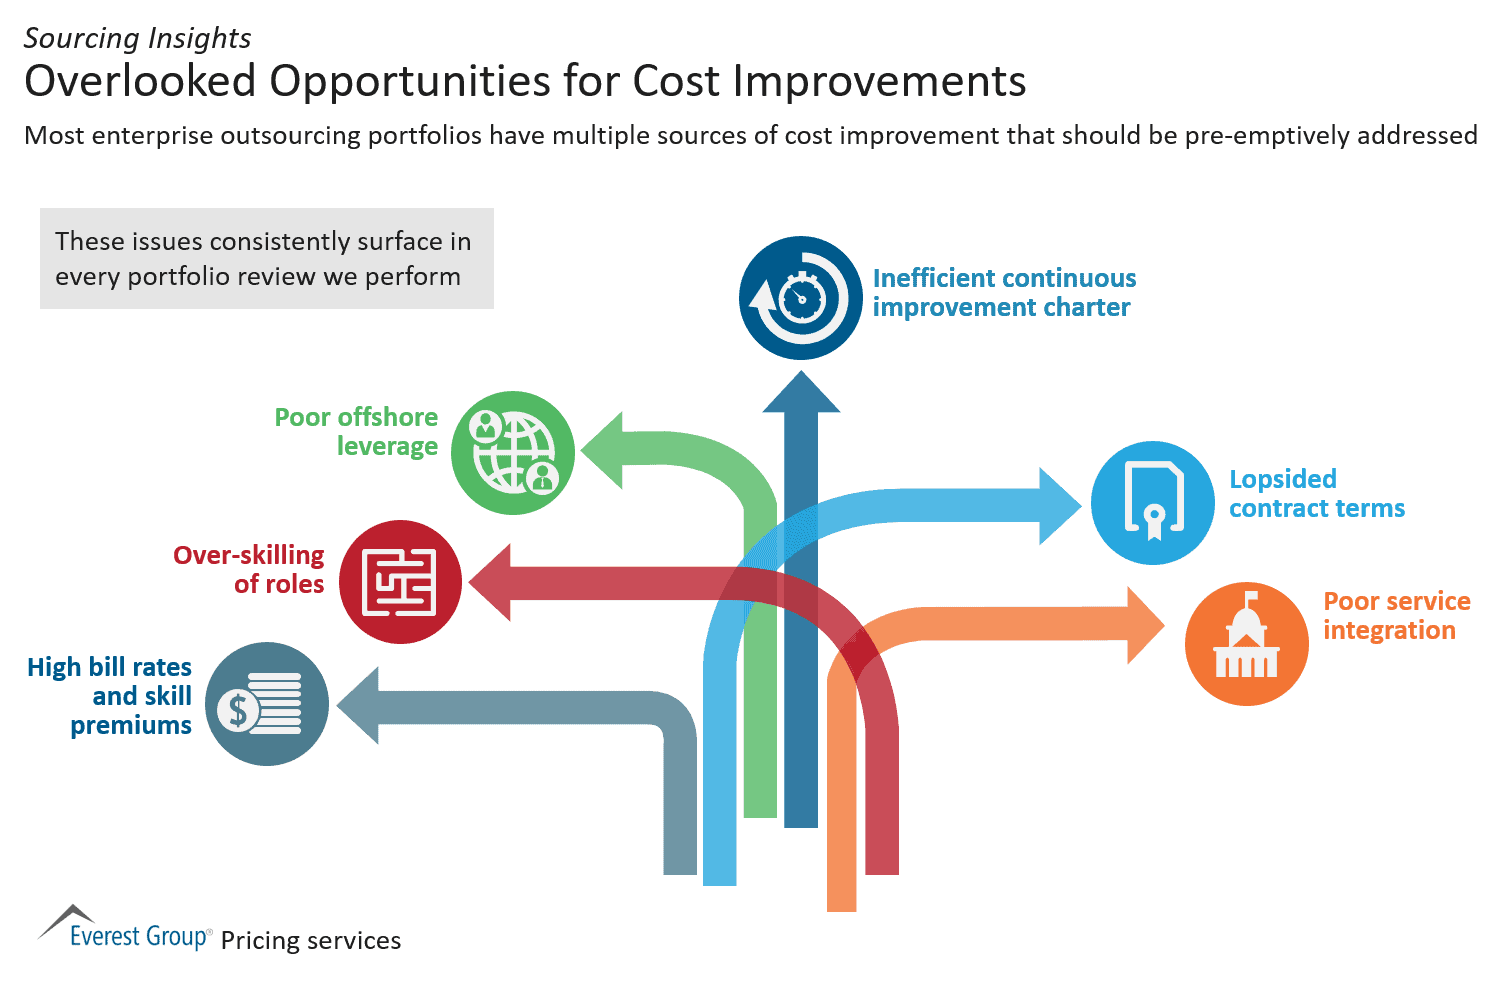 Overlooked Opportunities for Cost Improvements